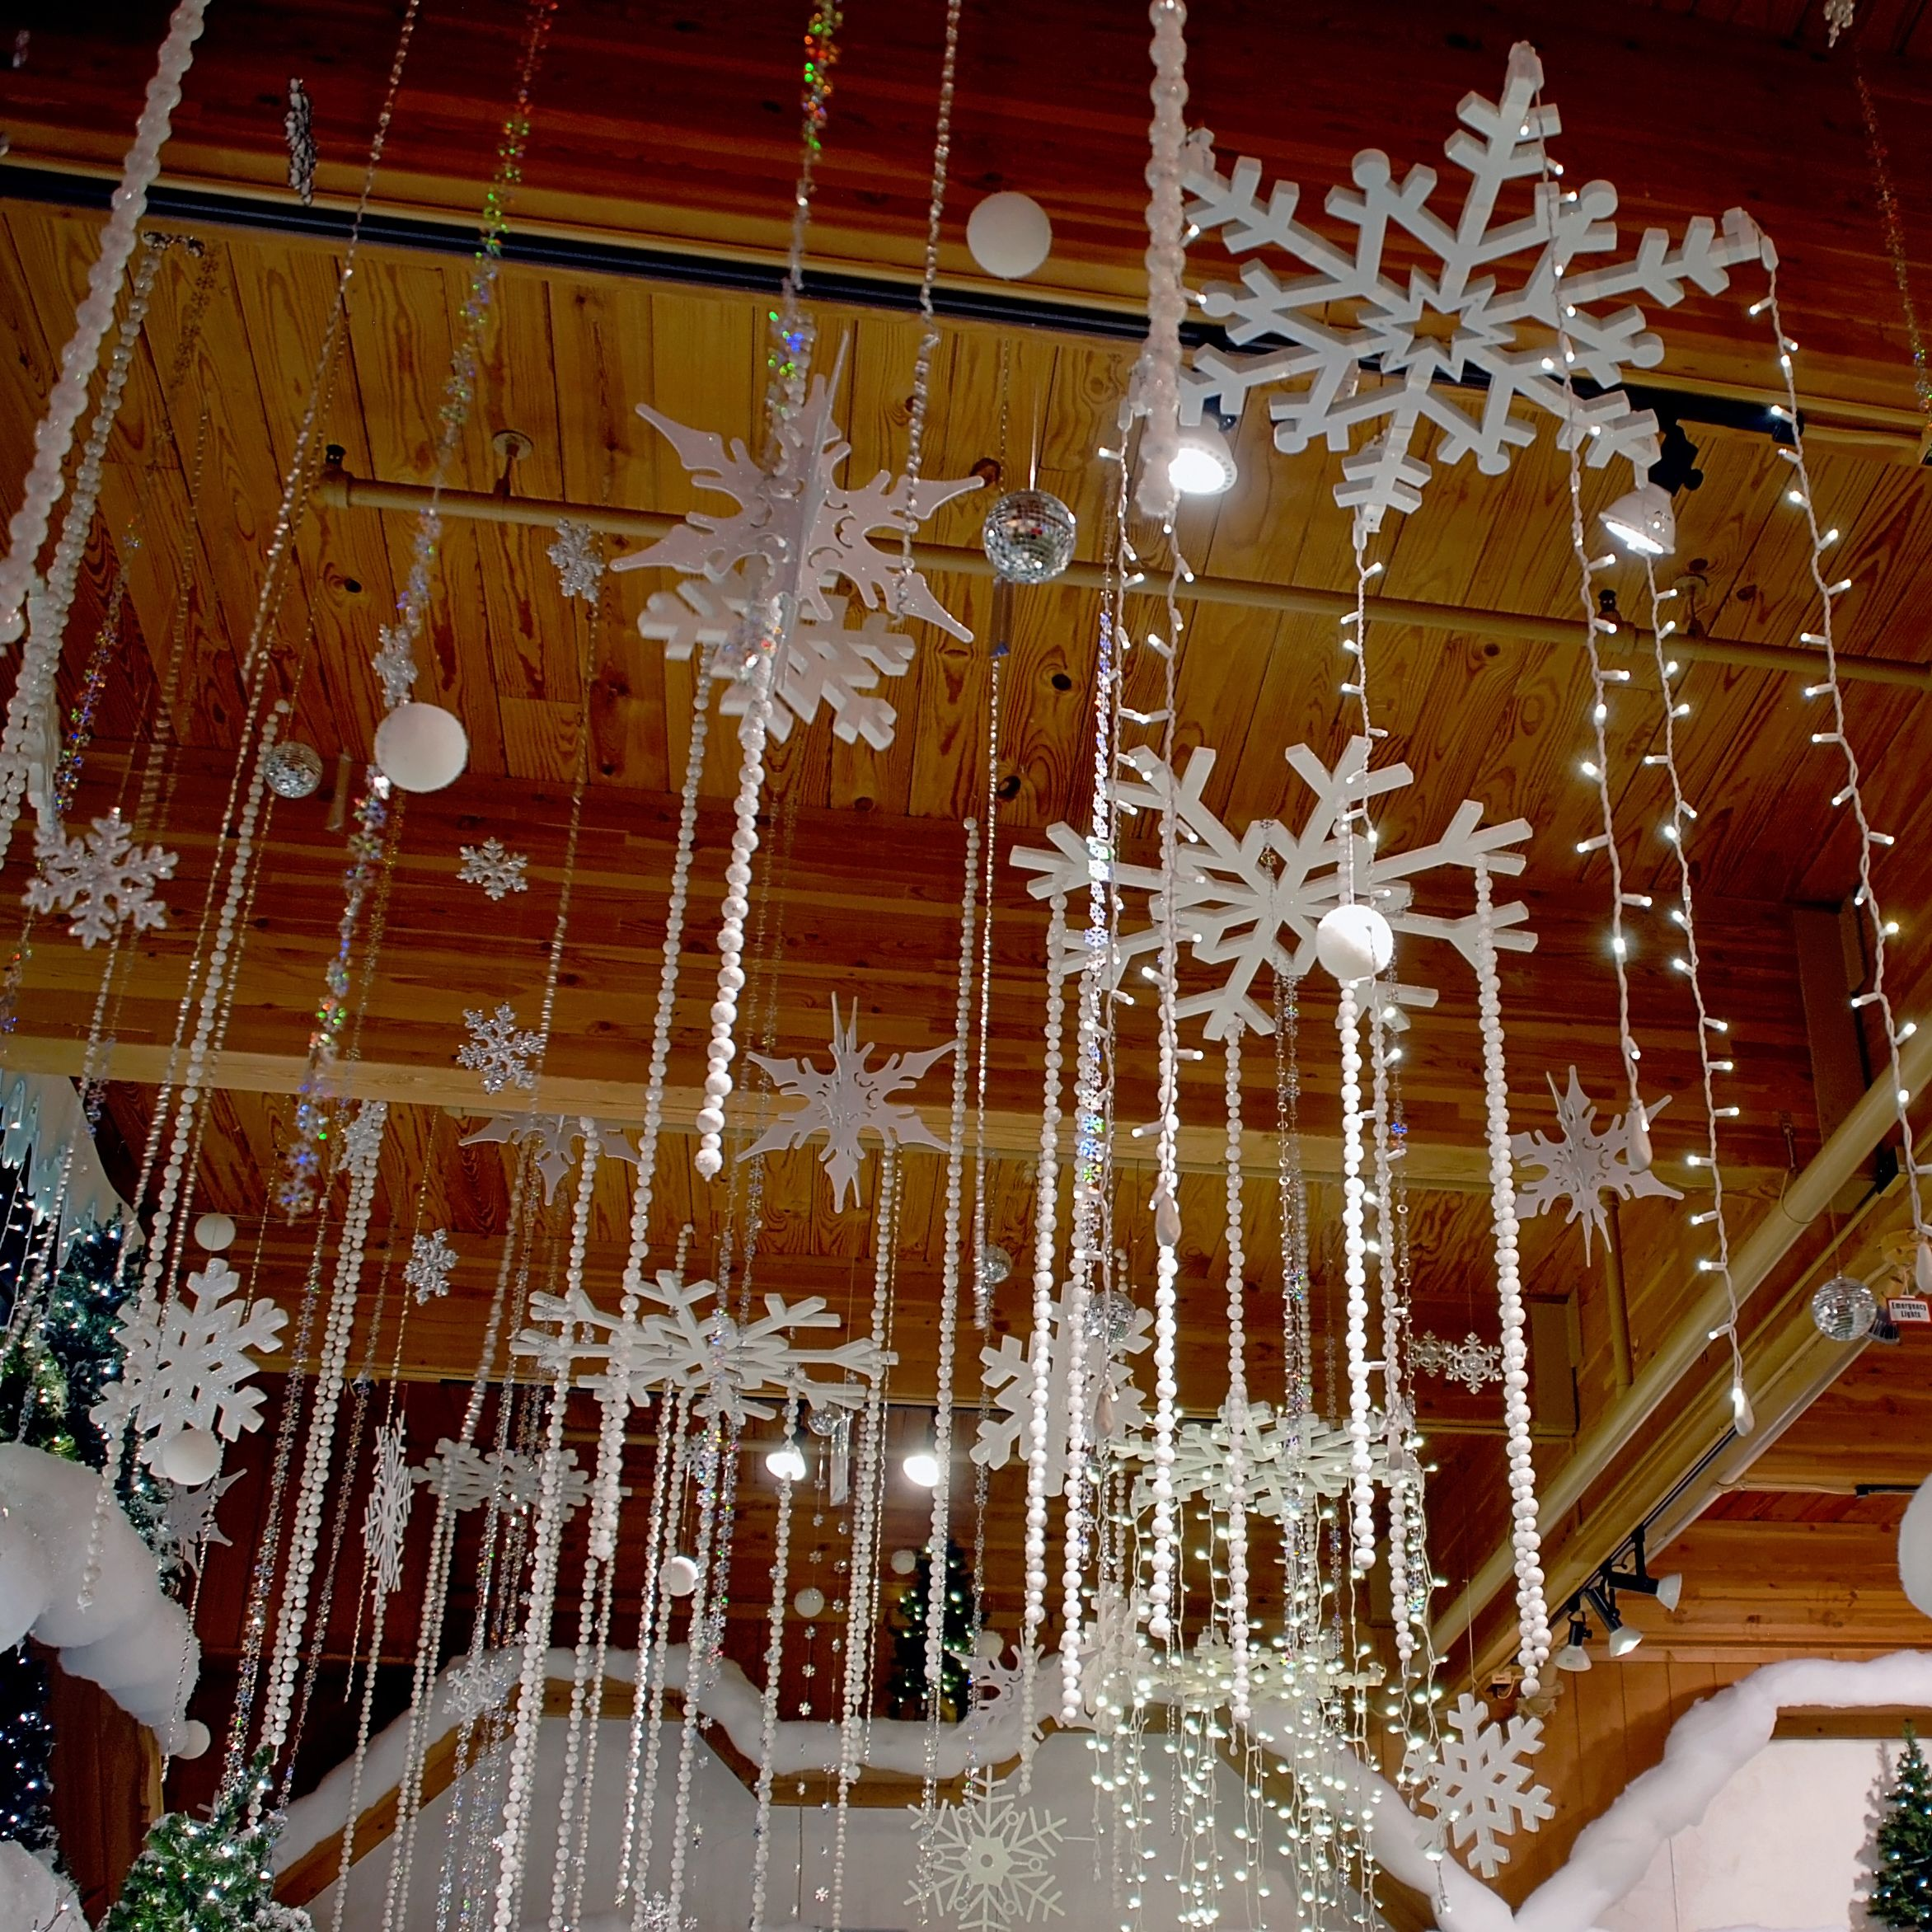 Snowflakes And Twinkling Lights Hang From The Ceiling Above